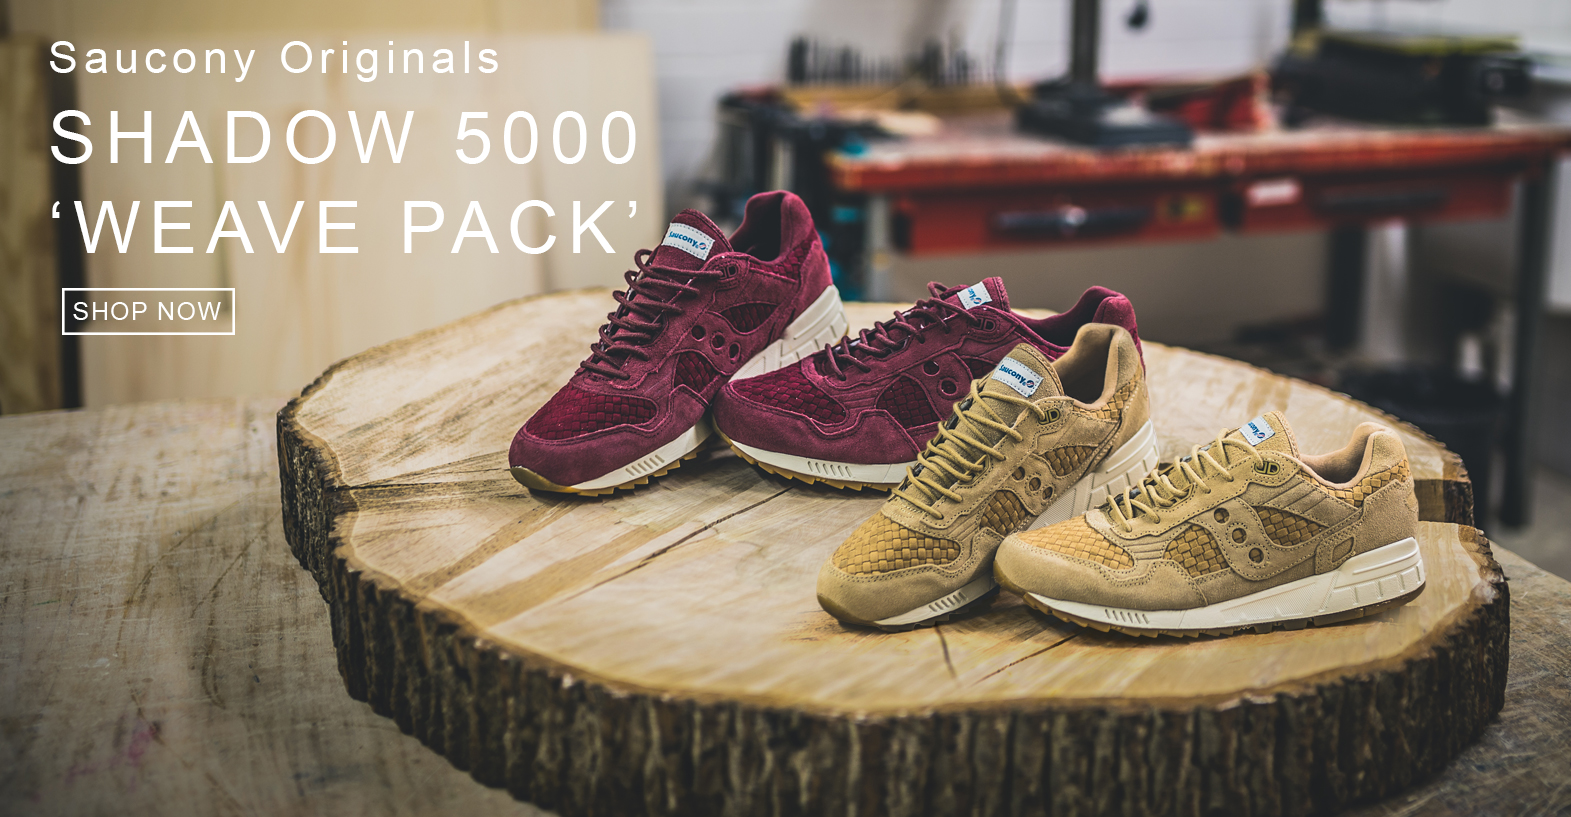 SAUCONY WEAVE PACK SHOP NOW